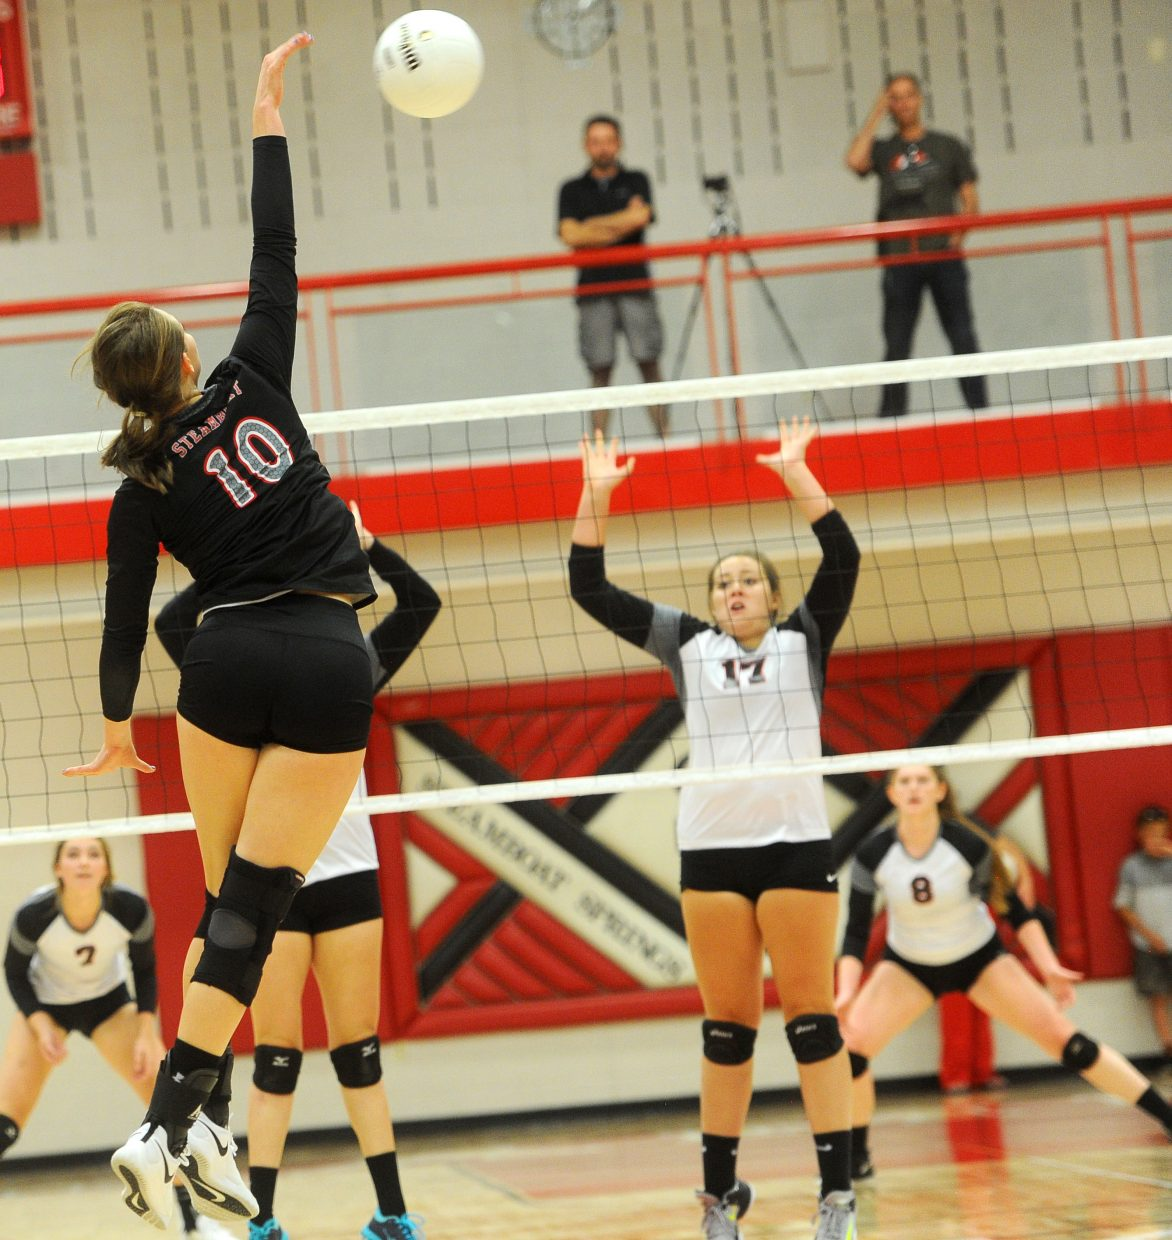 Steamboat Springs senior Anna Allsberry lines a kill against Eagle Valley at home on Thursday, Sept. 13.